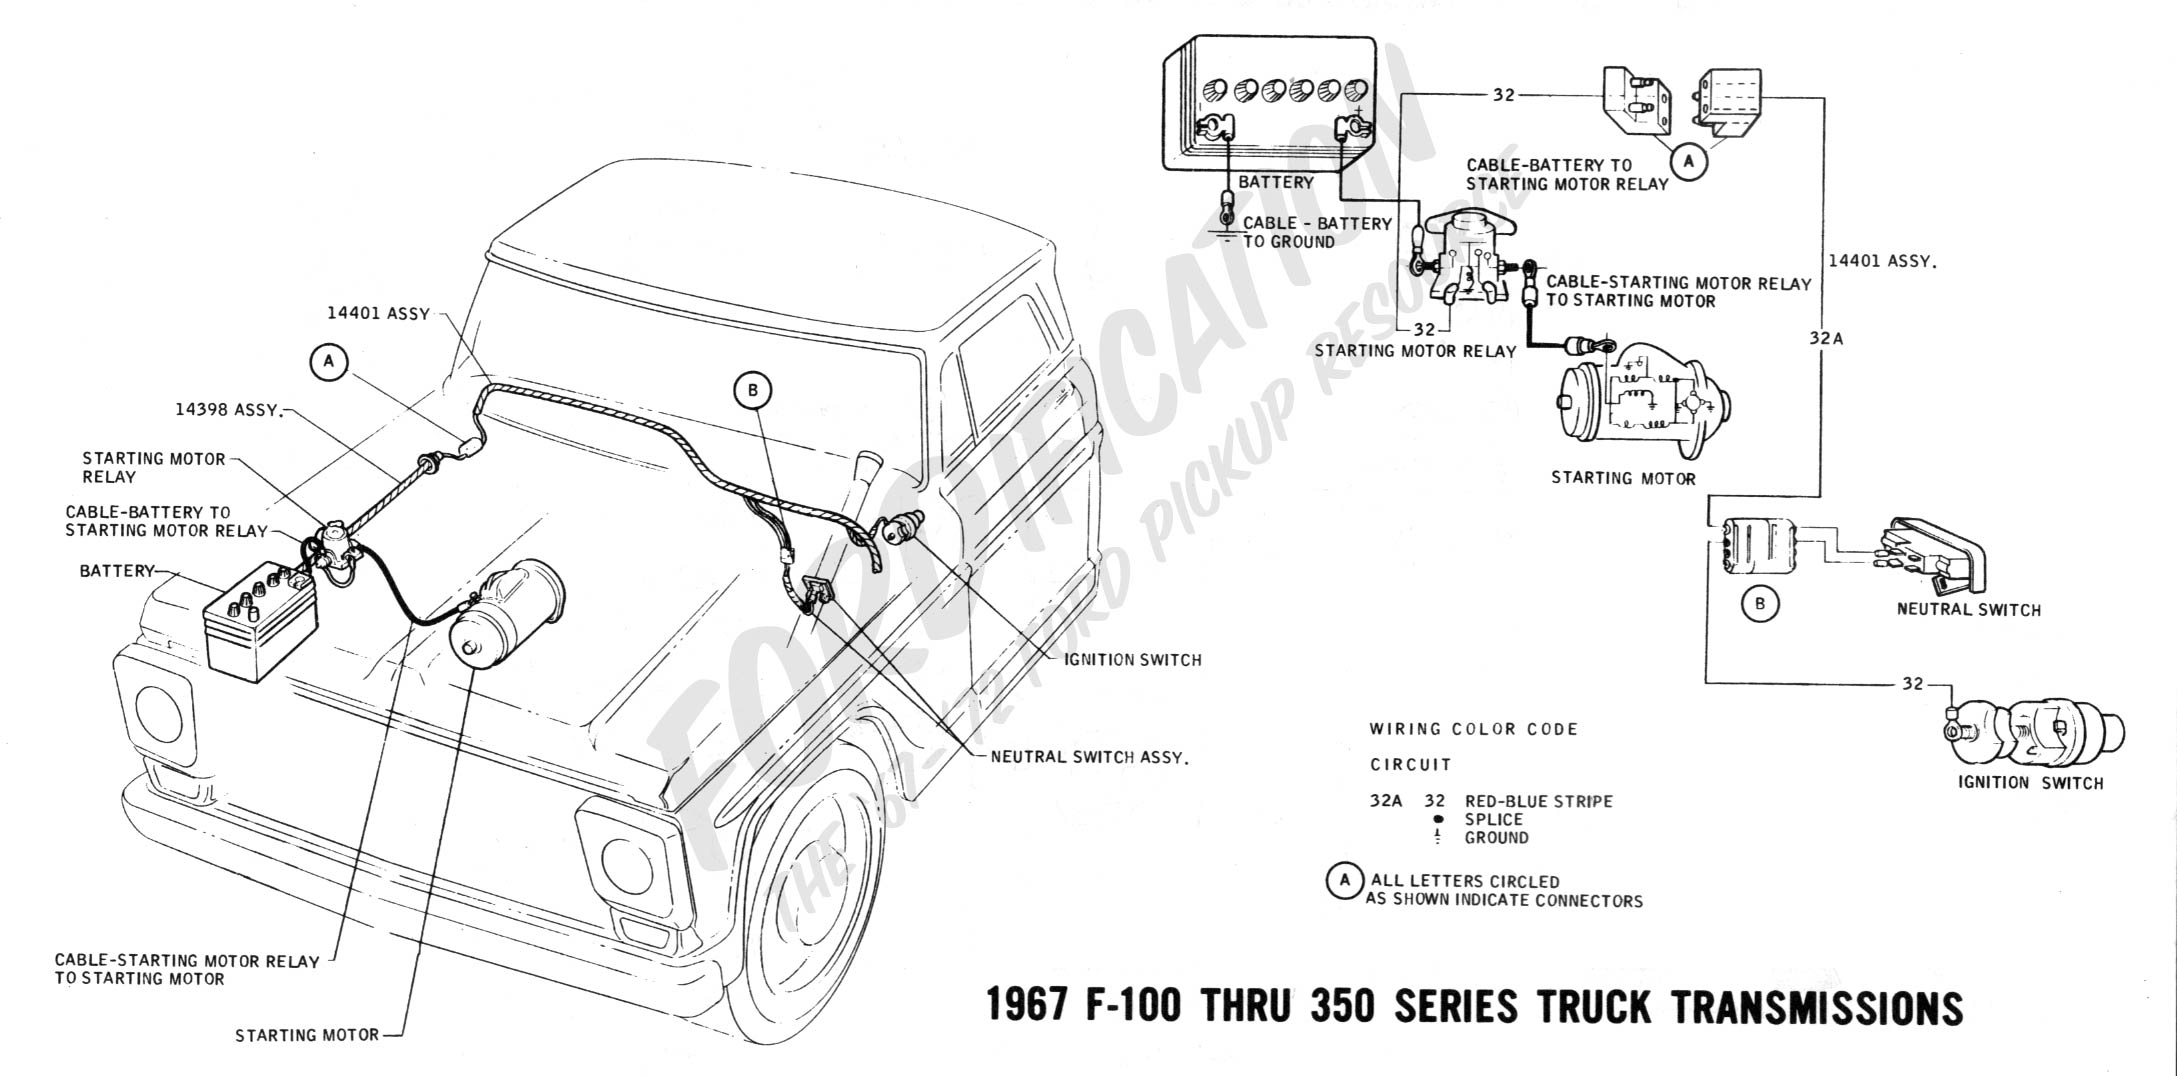 1978 Ford Ignition Wires Diagram Starting Know About Wiring 85 Firebird Truck Technical Drawings And Schematics Section H F150 78